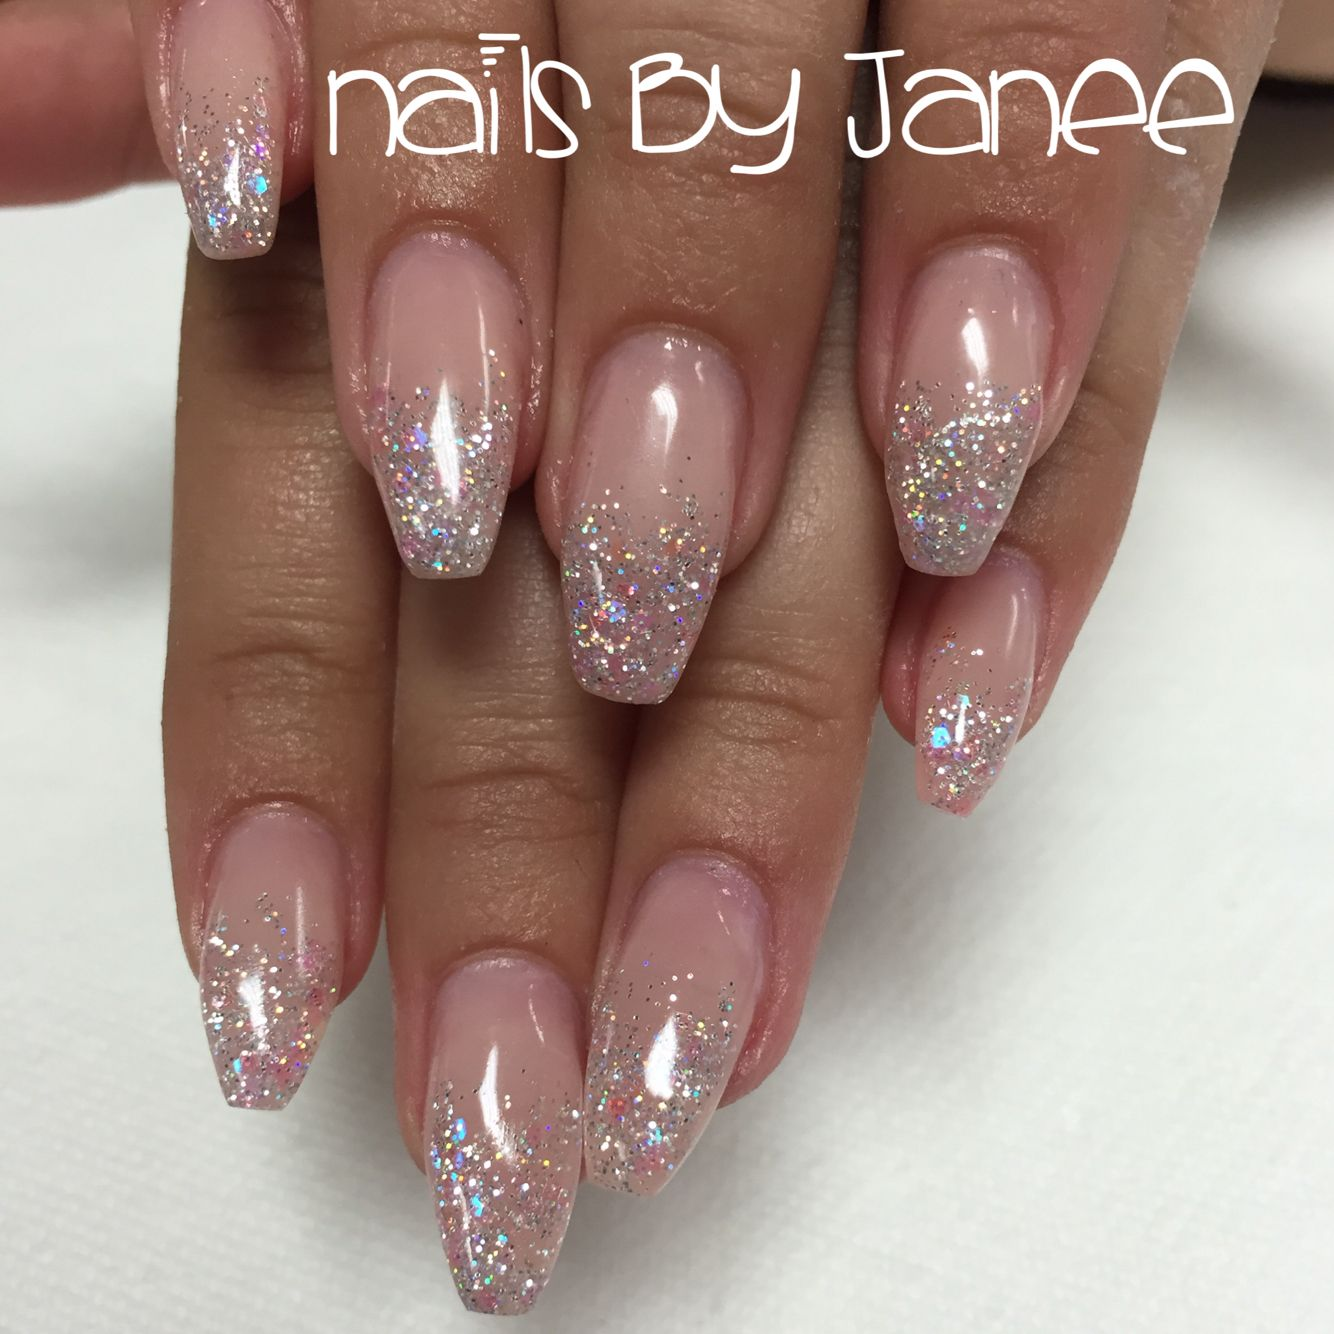 Glitter pink ballerina nails by Janee | Nails by Janee at A Wild ...